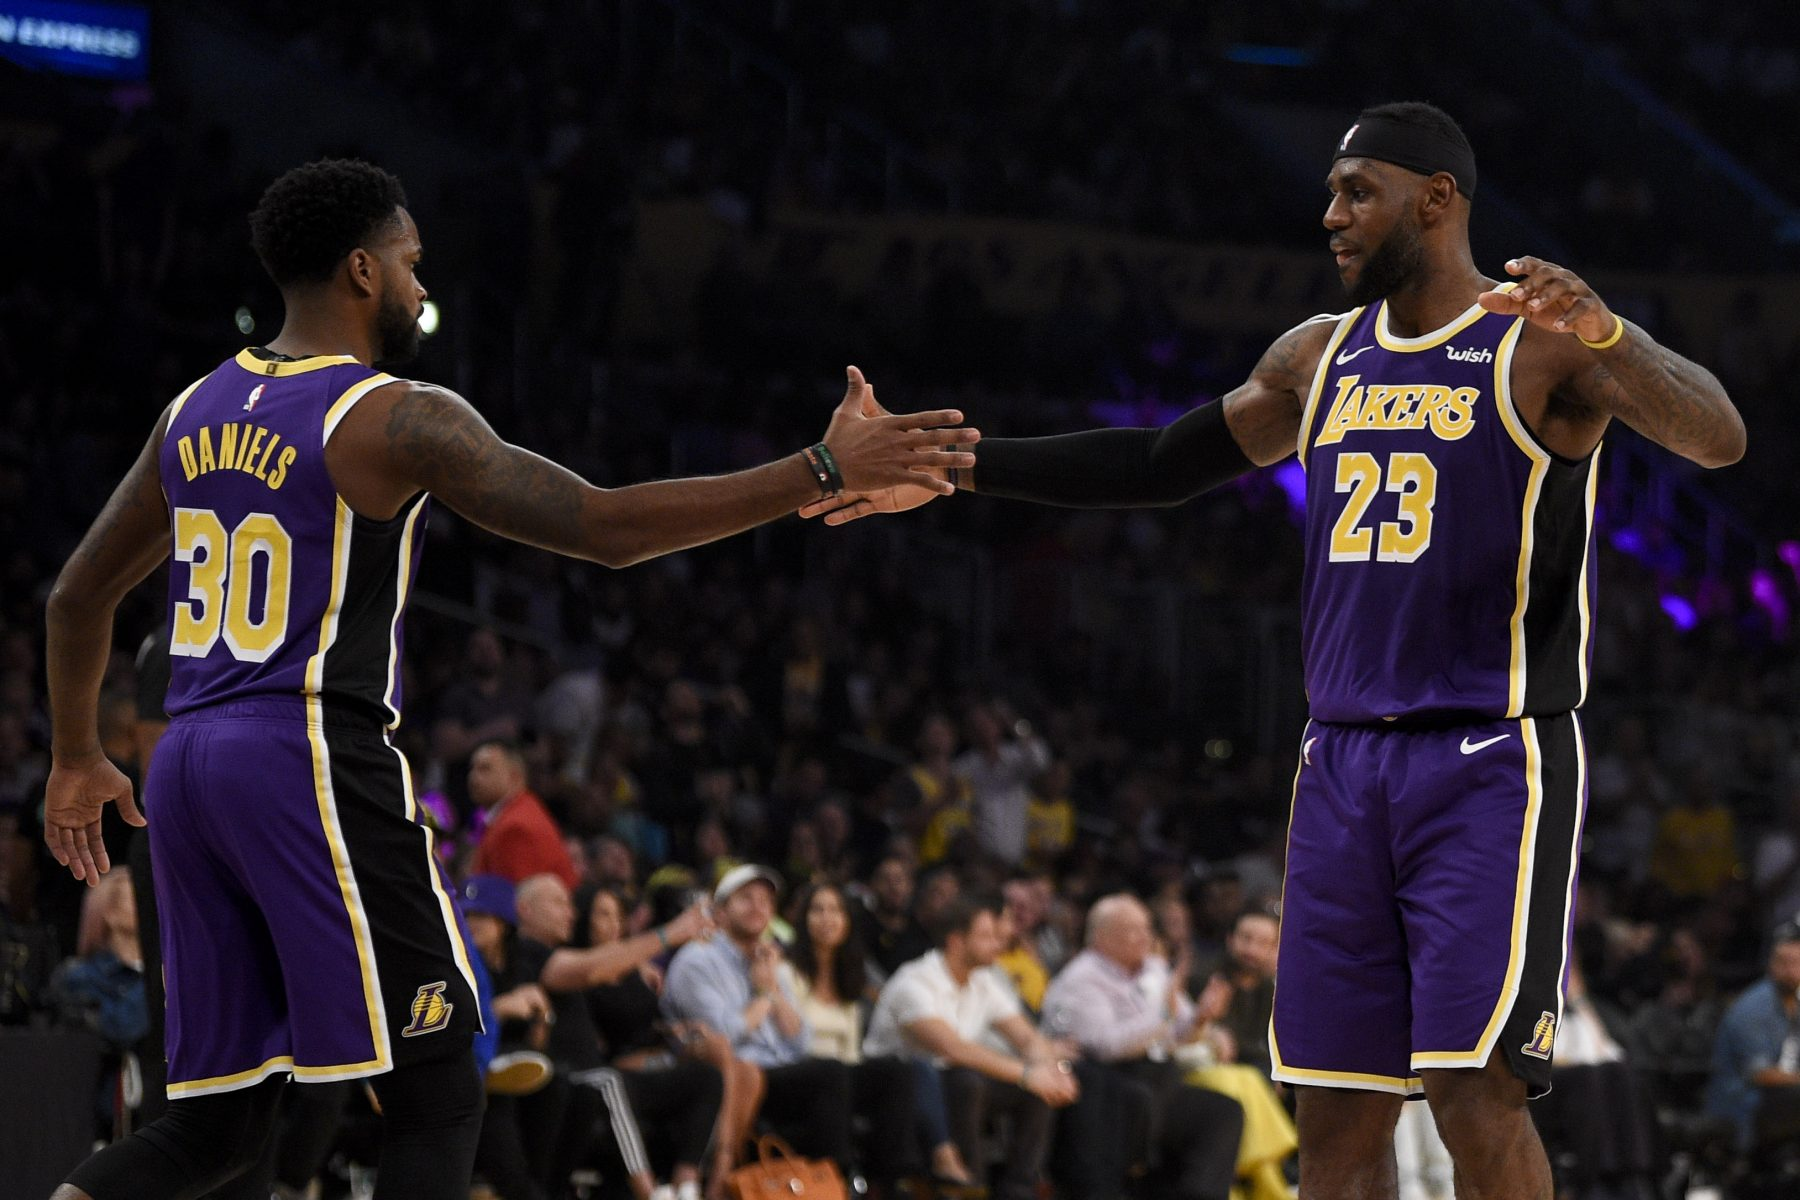 Troy Daniels and LeBron James